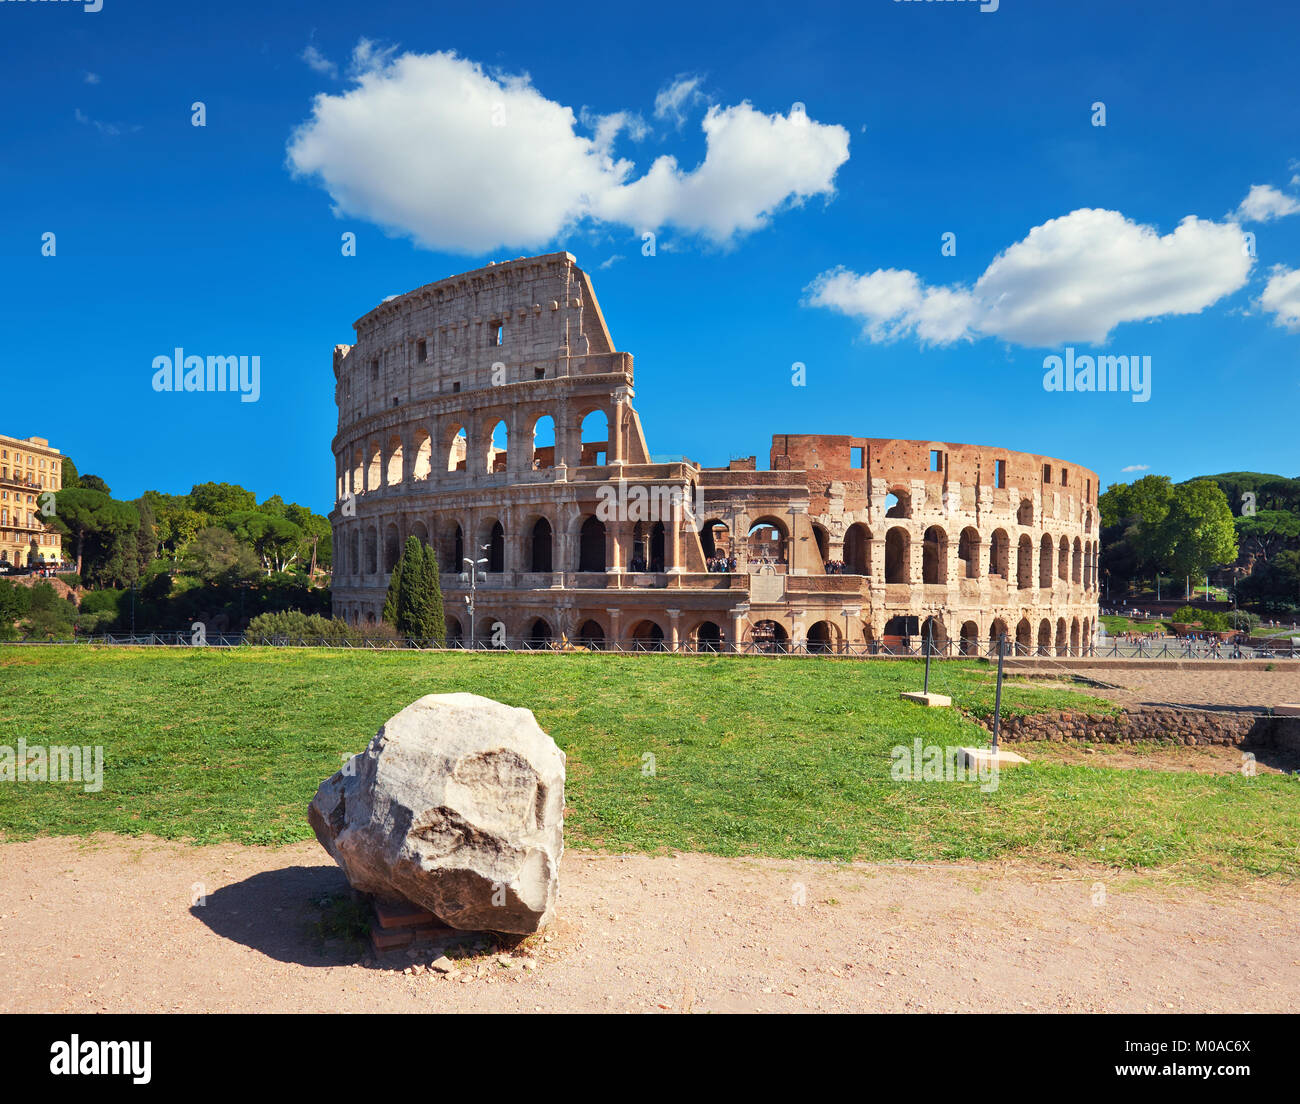 Rome, Italy. View of Colosseum from the Palatine Hill on a sunny day with blue sky and clouds. - Stock Image